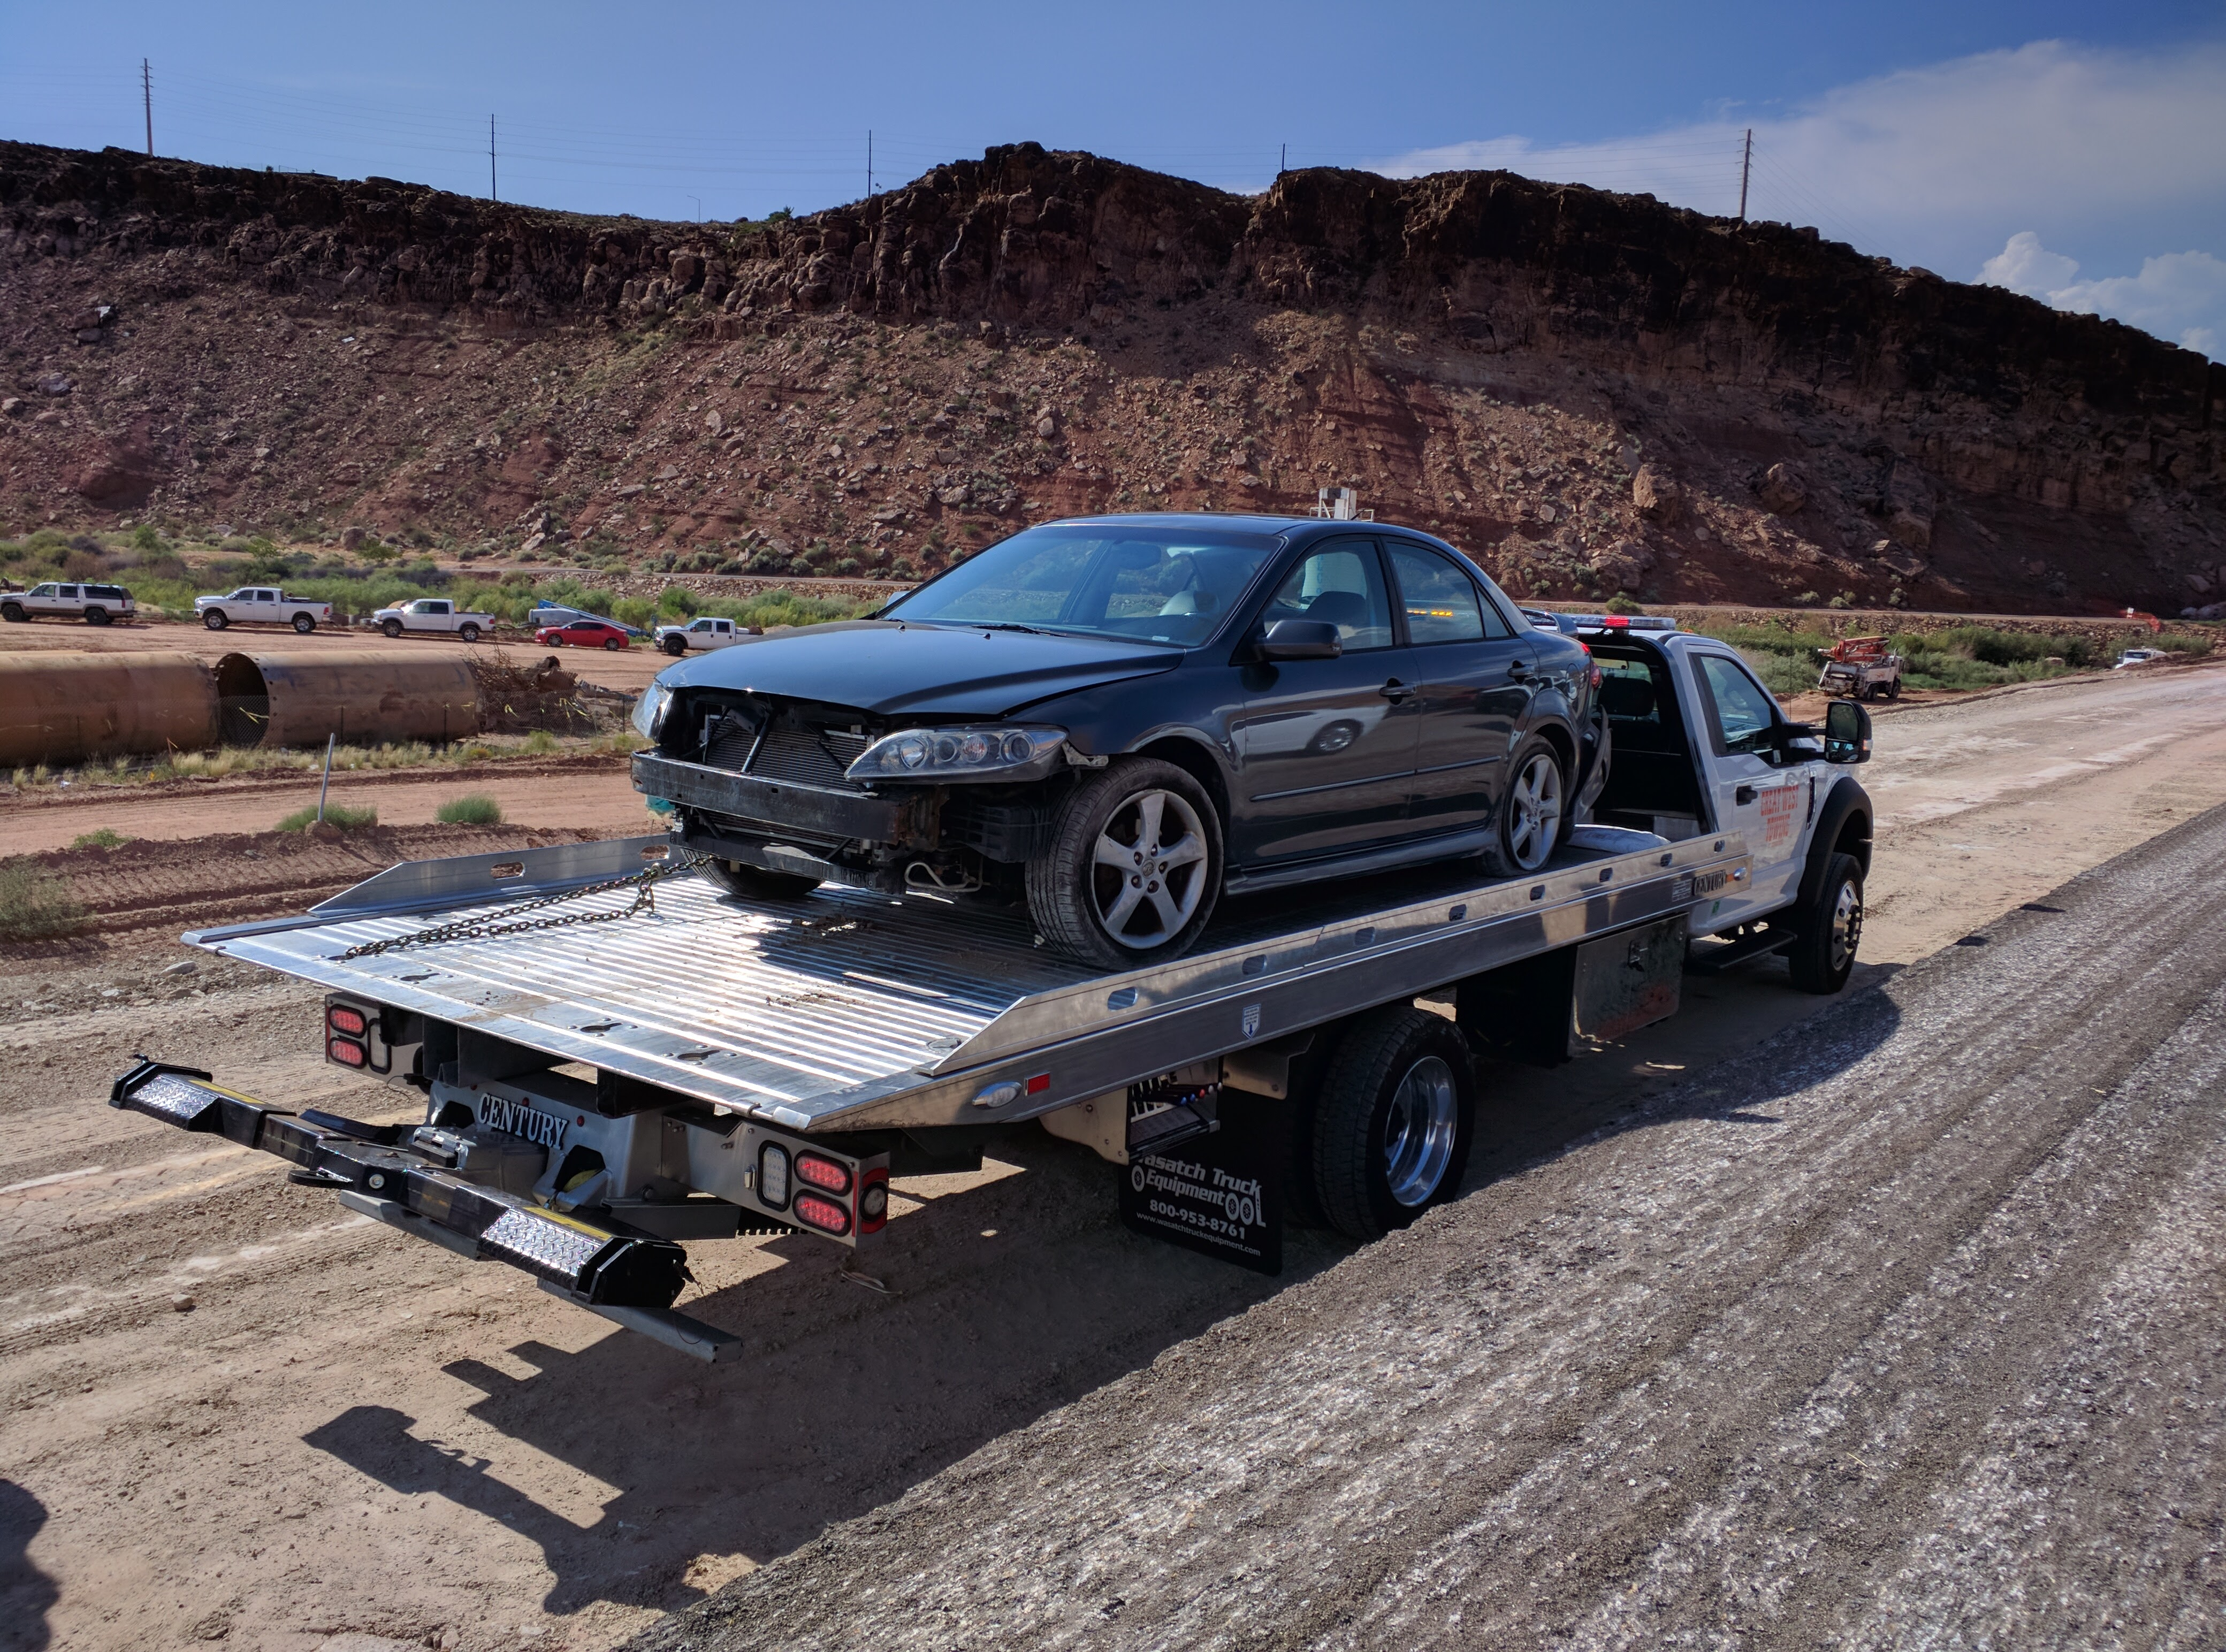 six utah is it can already so perfection by think into seems something their top road taking mazda rf to speed manual perfect and perfecting soft small roadster img mx a that turning back blog